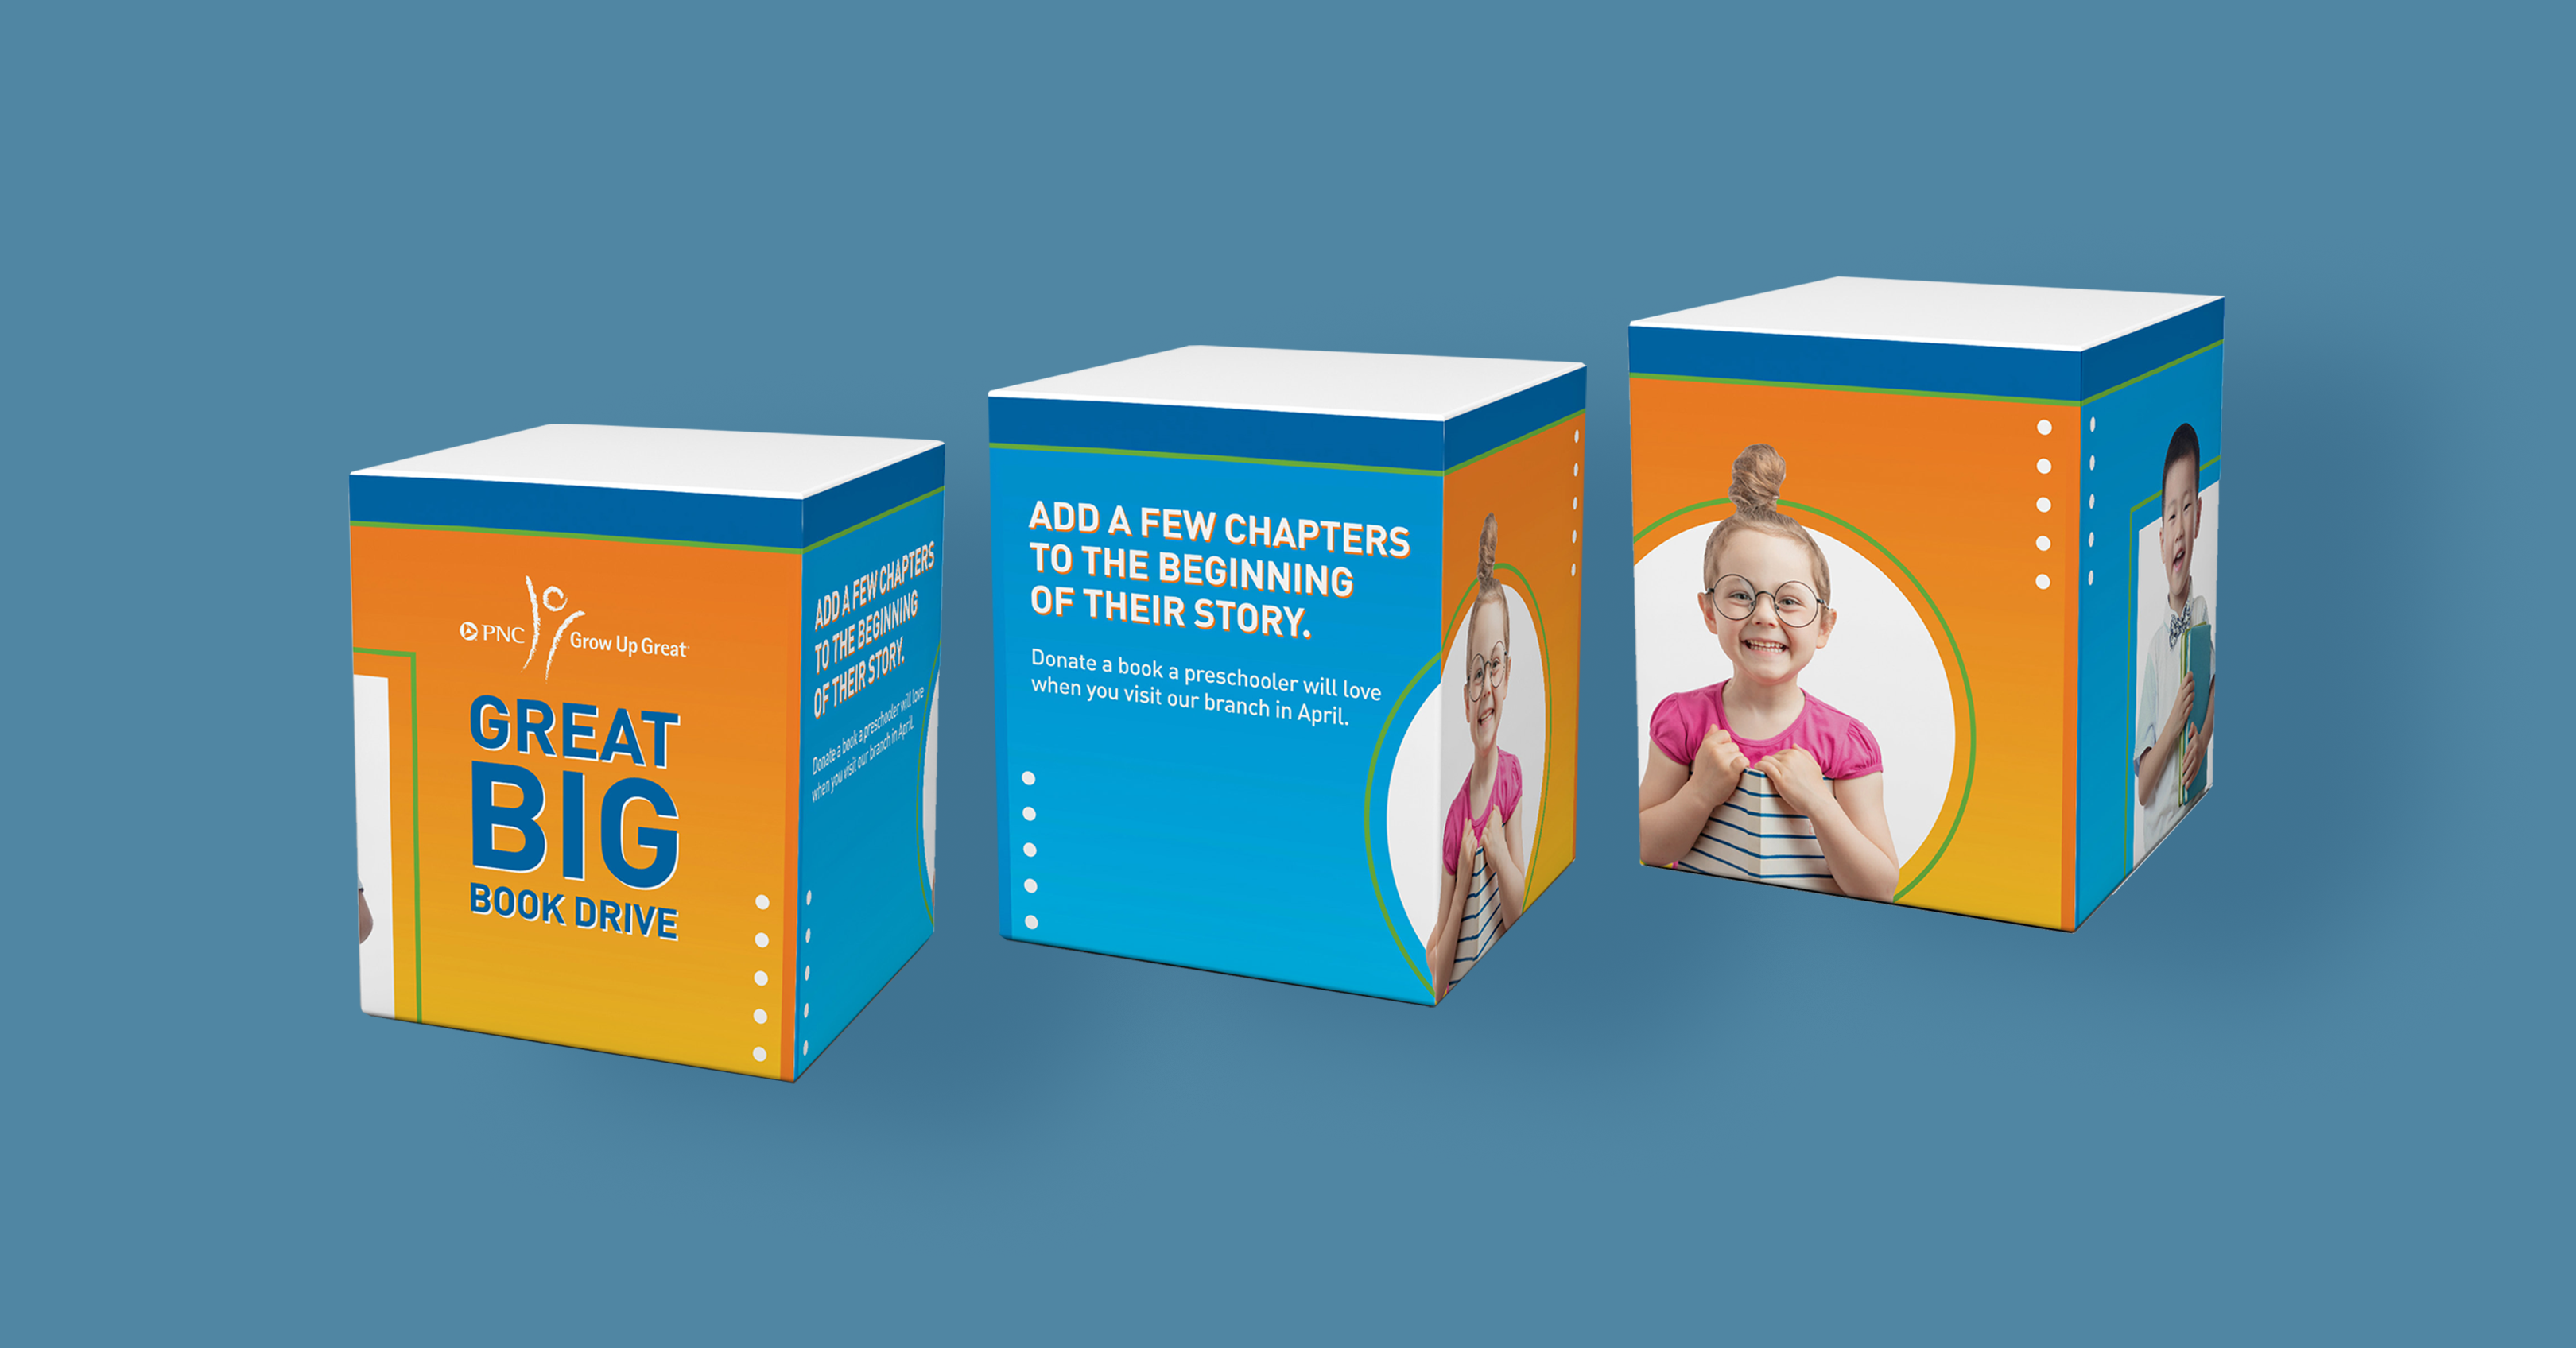 """A mockup of a cube-shaped box from three different angles, over a blue background. The sides of the box alternate from a yellow-orange gradient to a teal-blue gradient. The main side features copy that reads """"Great Big Book Drive,"""" and two of the sides features images of children holding books and smiling, overlaid on white shapes. The top of the box has a thick, dark blue border."""